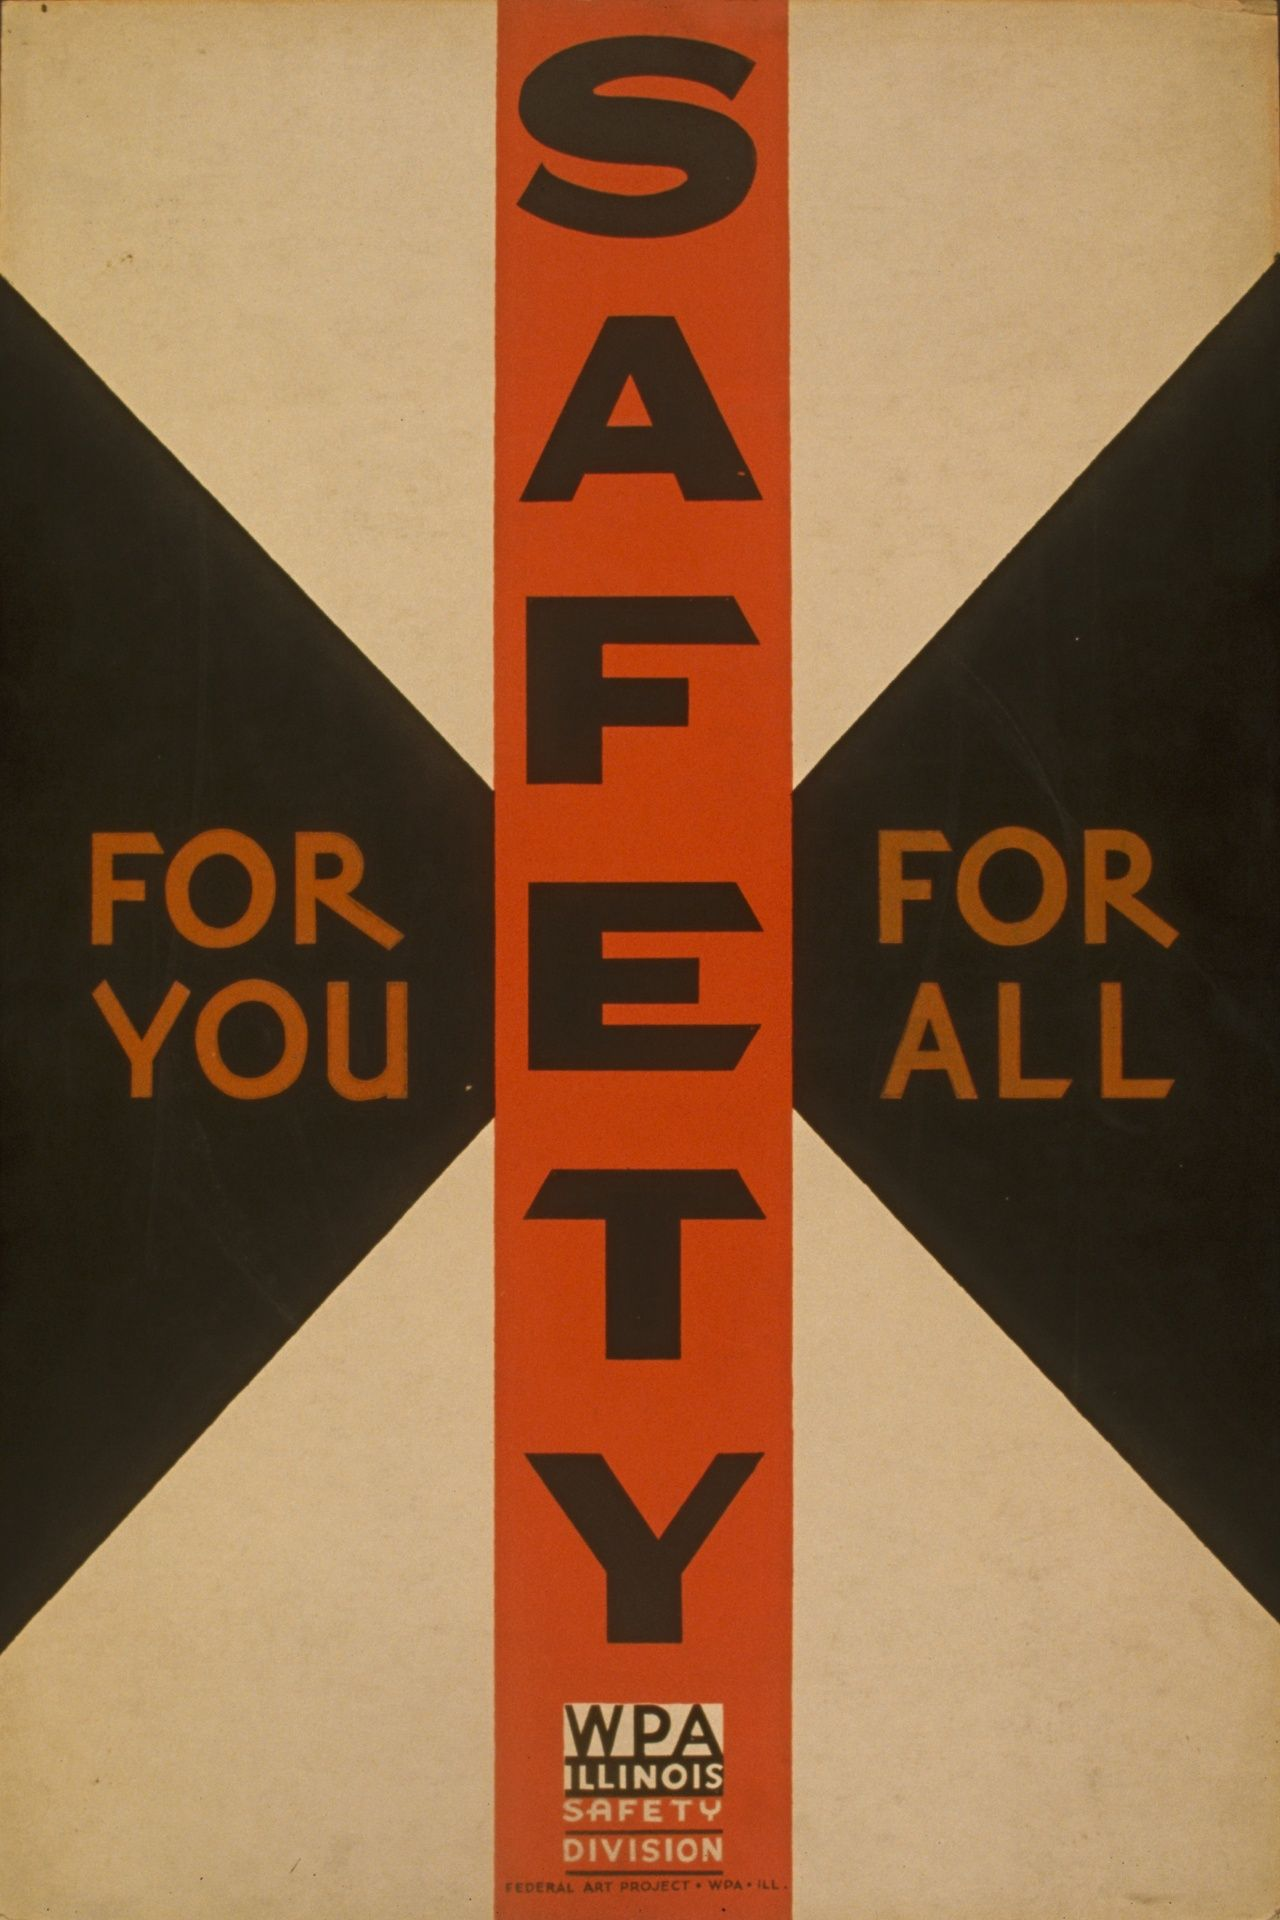 Pin by Becci Chambers on safety posters Health, safety